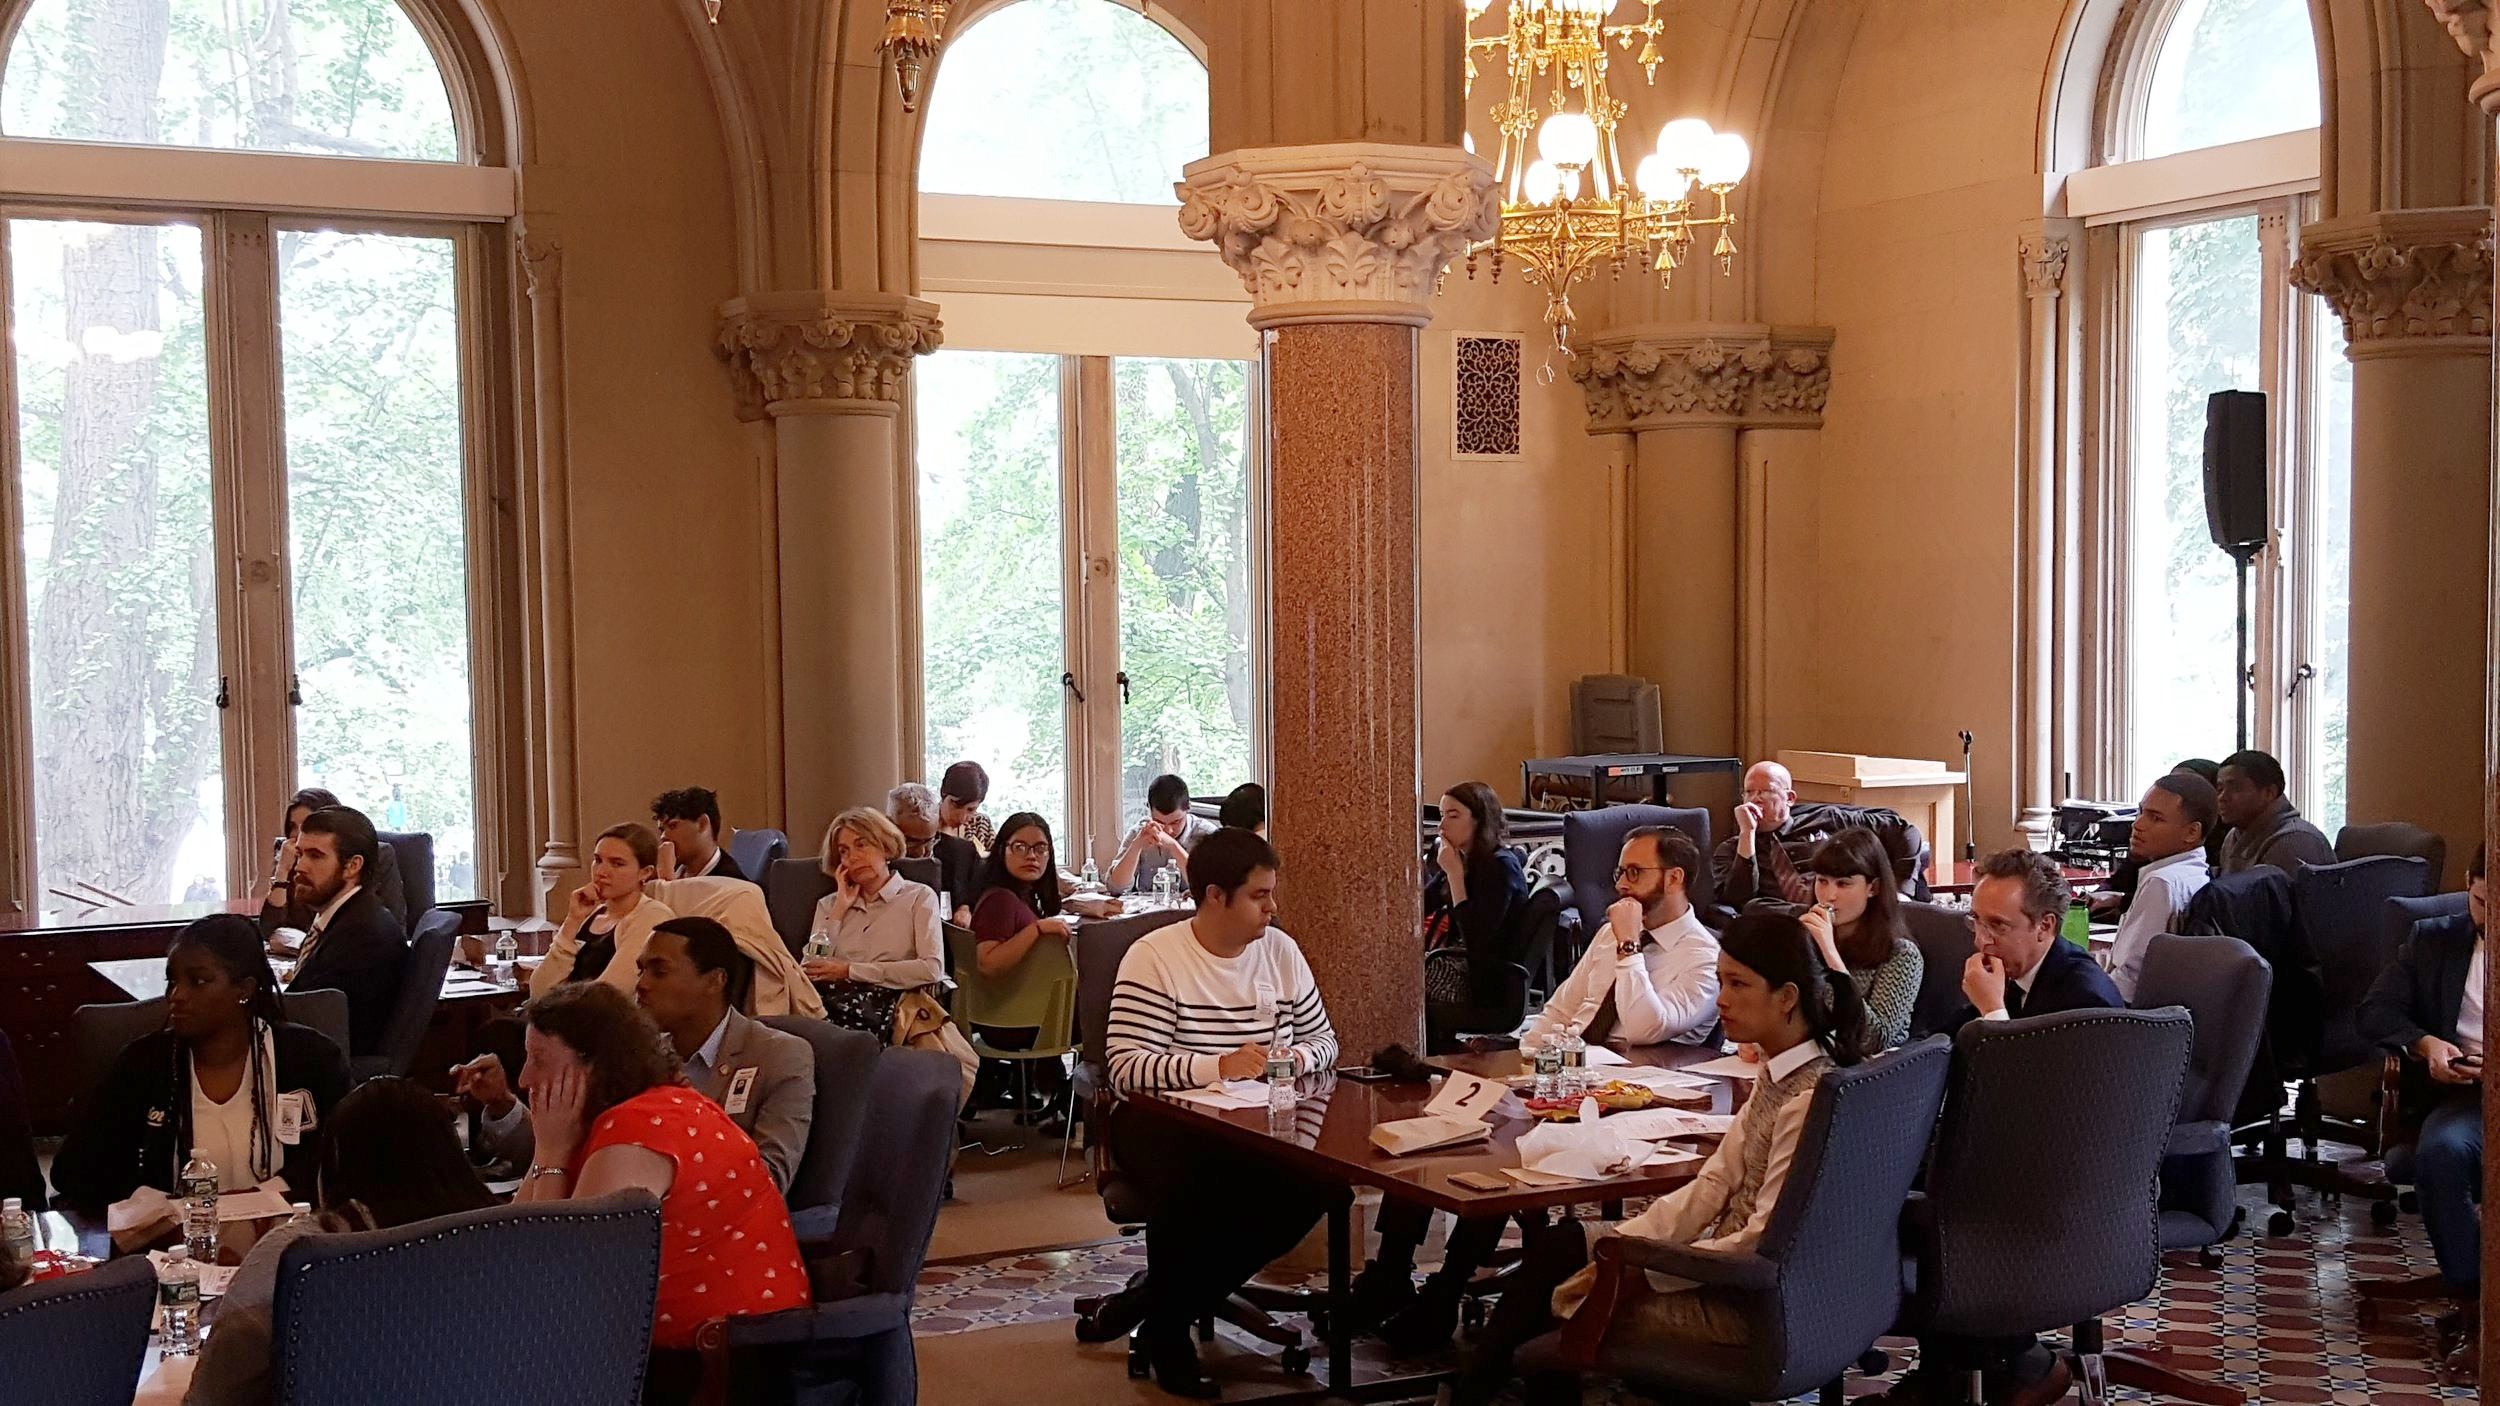 Guests listen intently to student presenters at the luncheon.